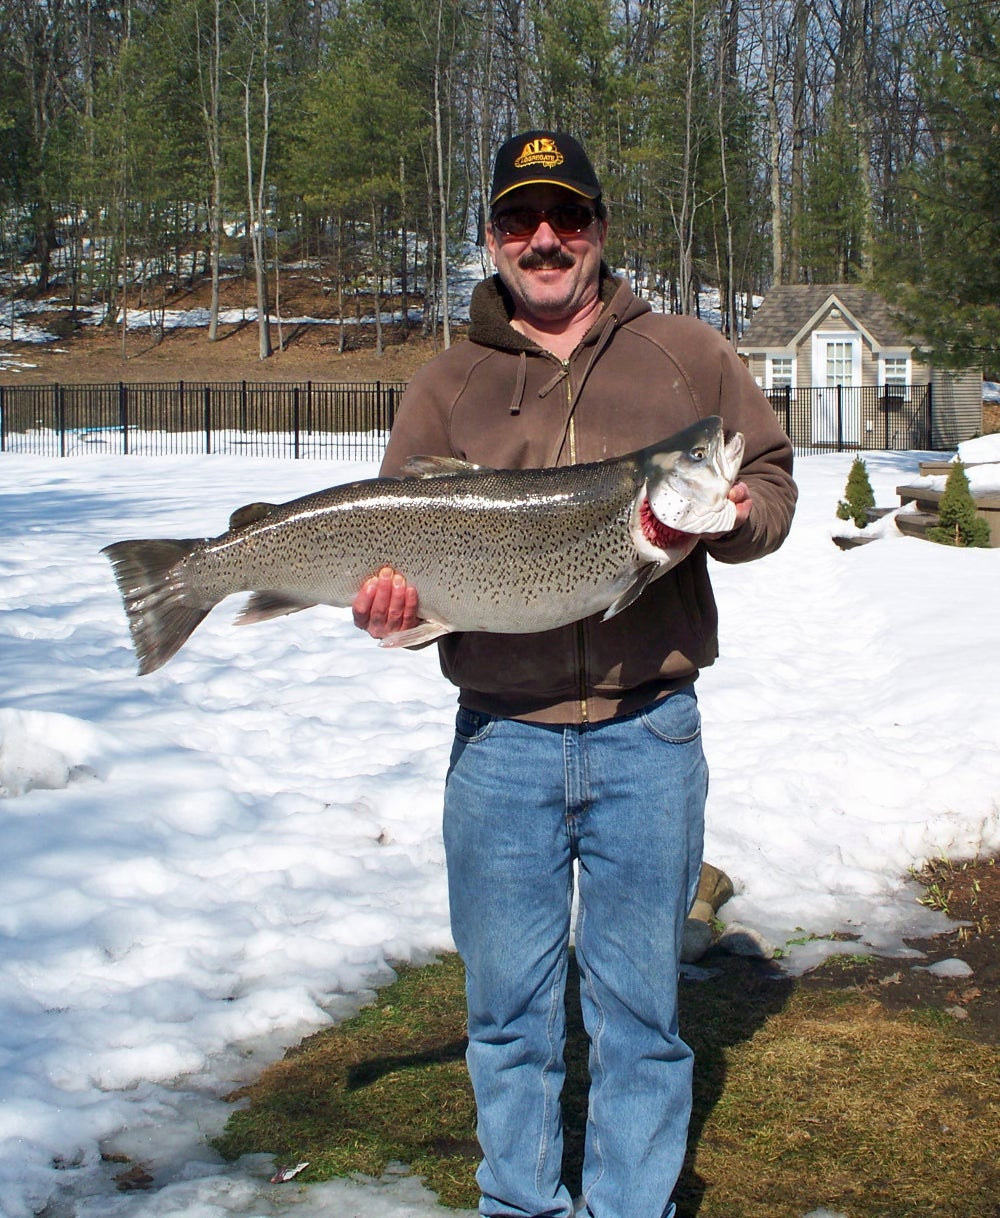 Is This Fish the New World-Record Landlocked Atlantic Salmon or a Trophy-Class Brown Trout?